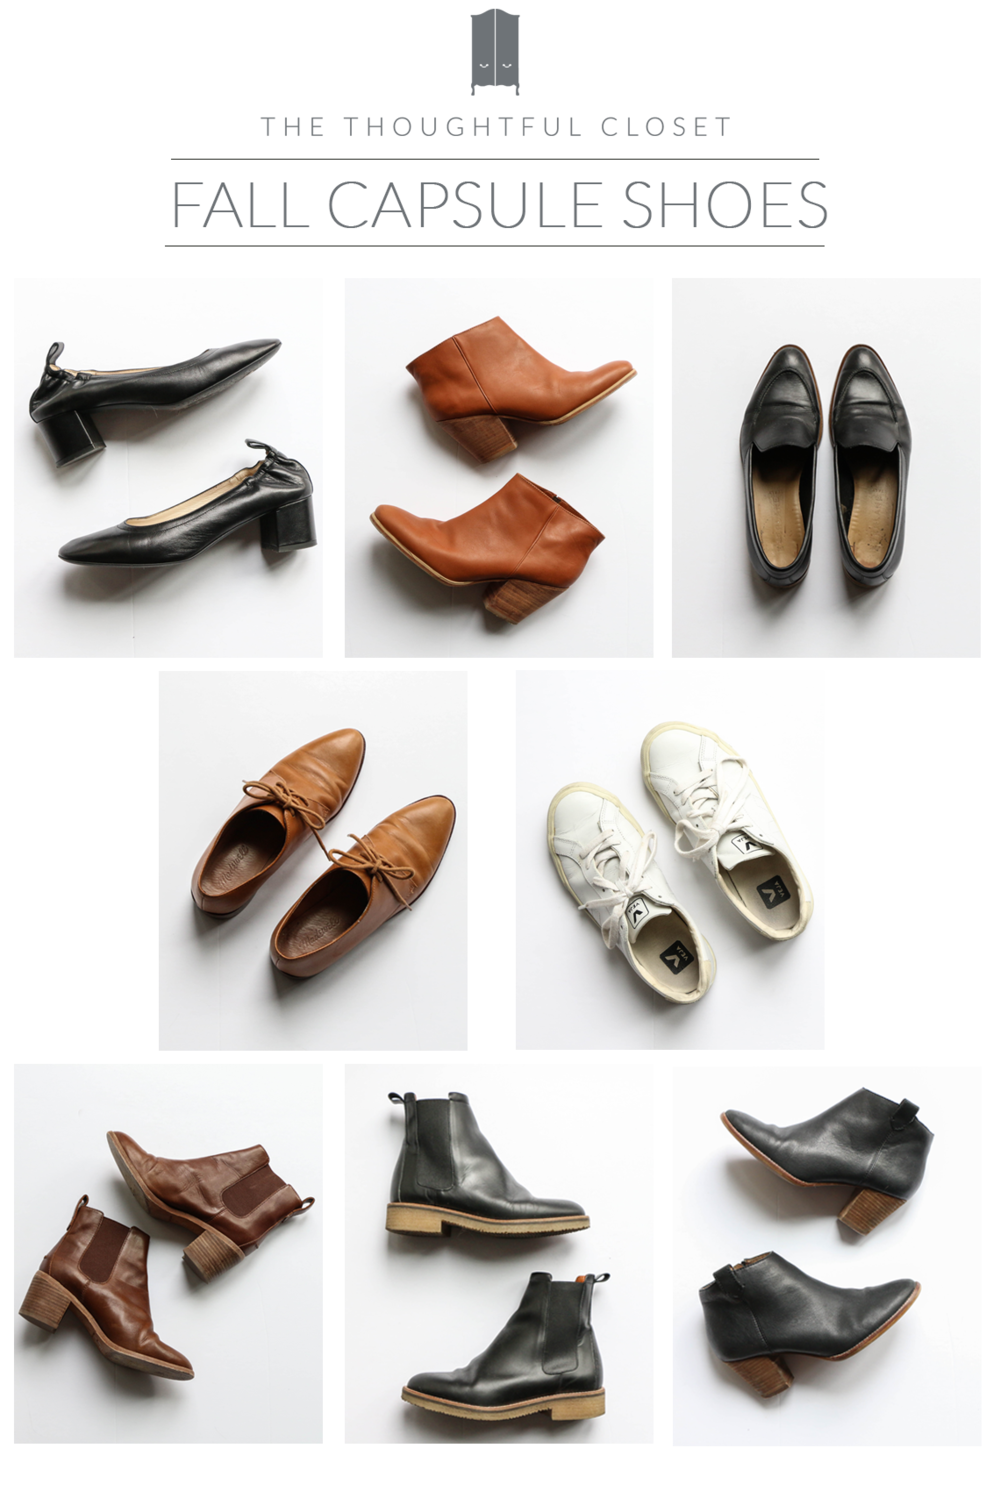 the-thoughtful-closet_fall-capsule-shoes.png